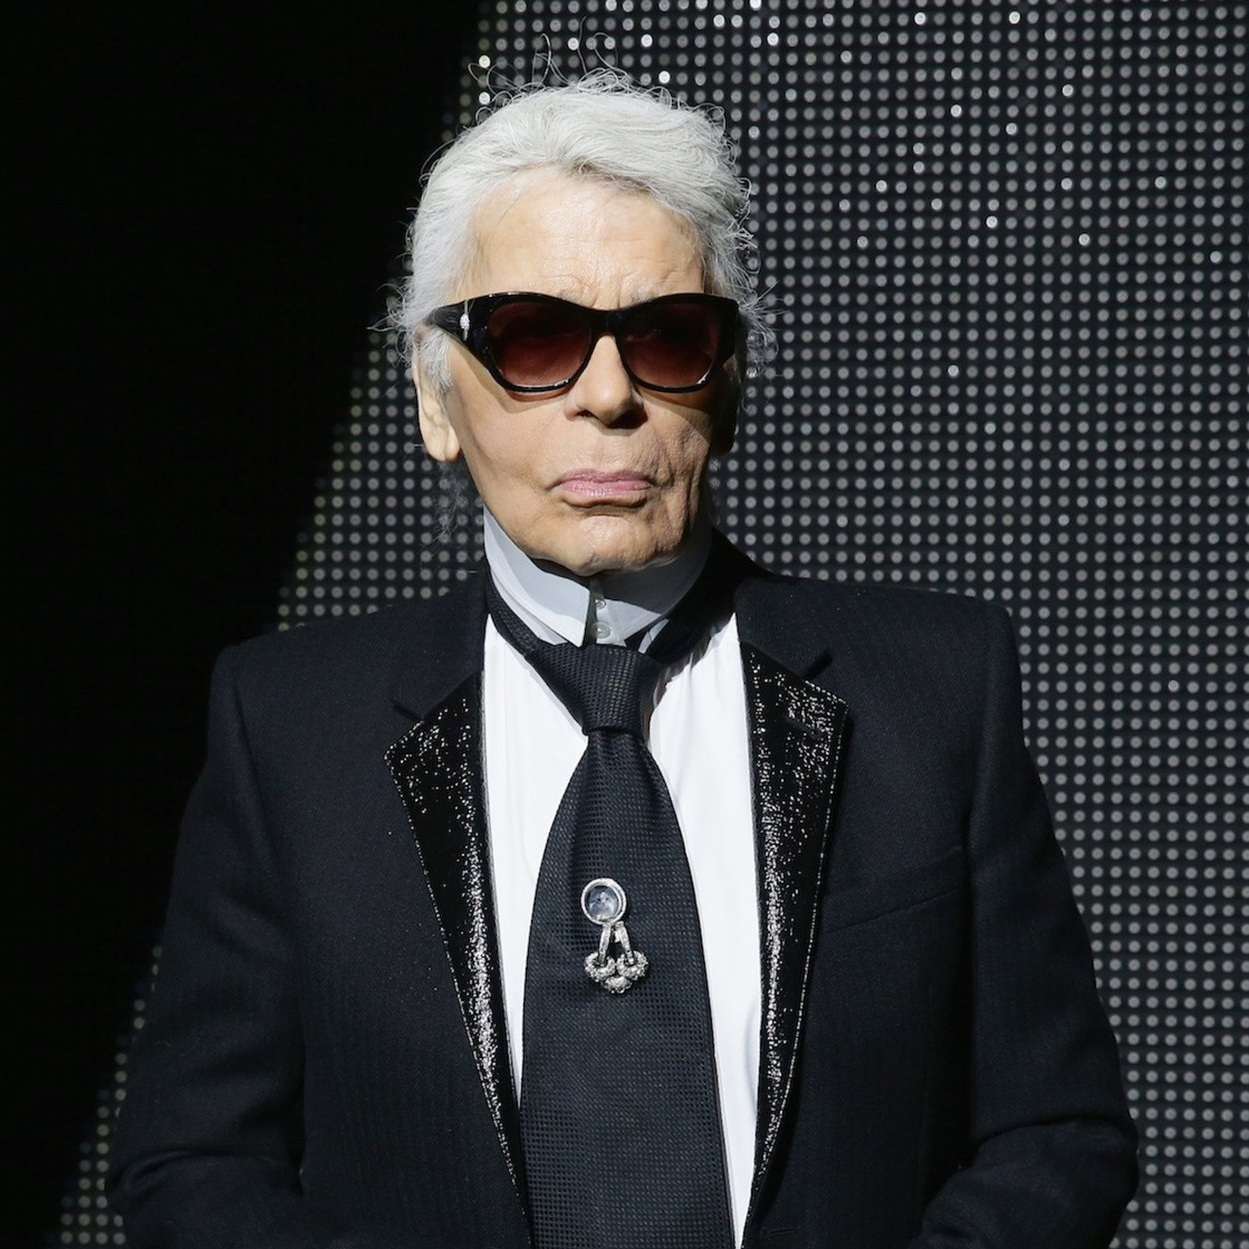 We Can't Ignore Karl Lagerfeld's Complex Legacy - CNN